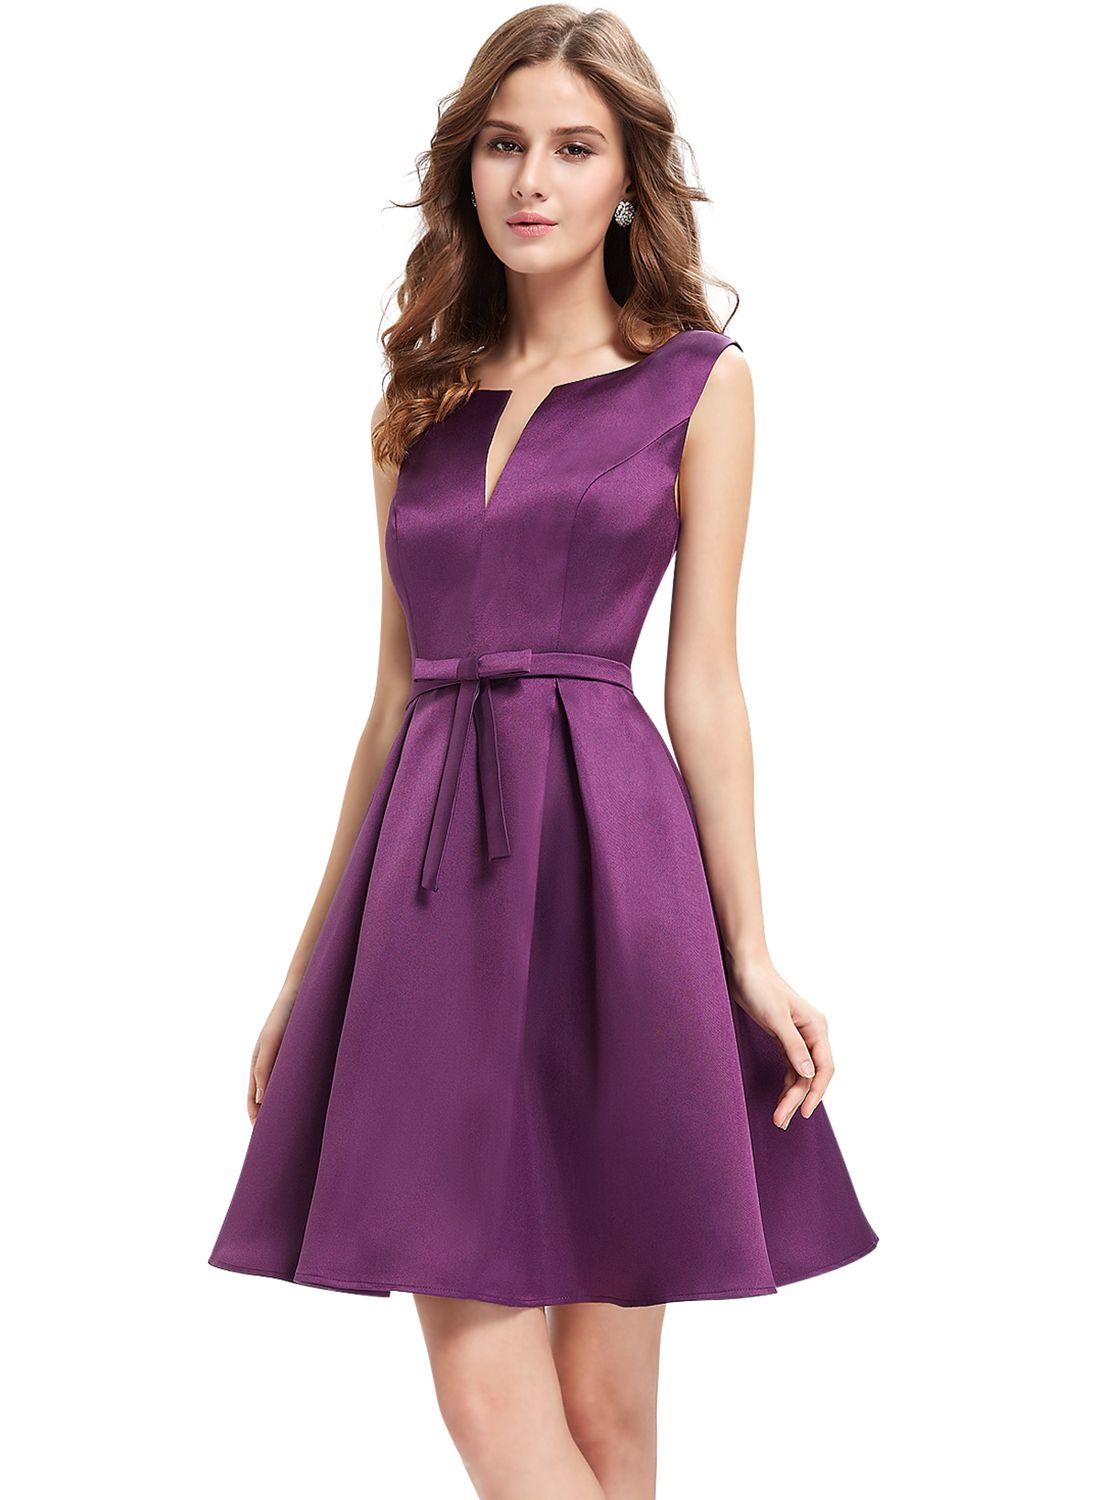 http://www.azbro.com/cocktail-dresses/200490-women-s-elegant-cut-out ...